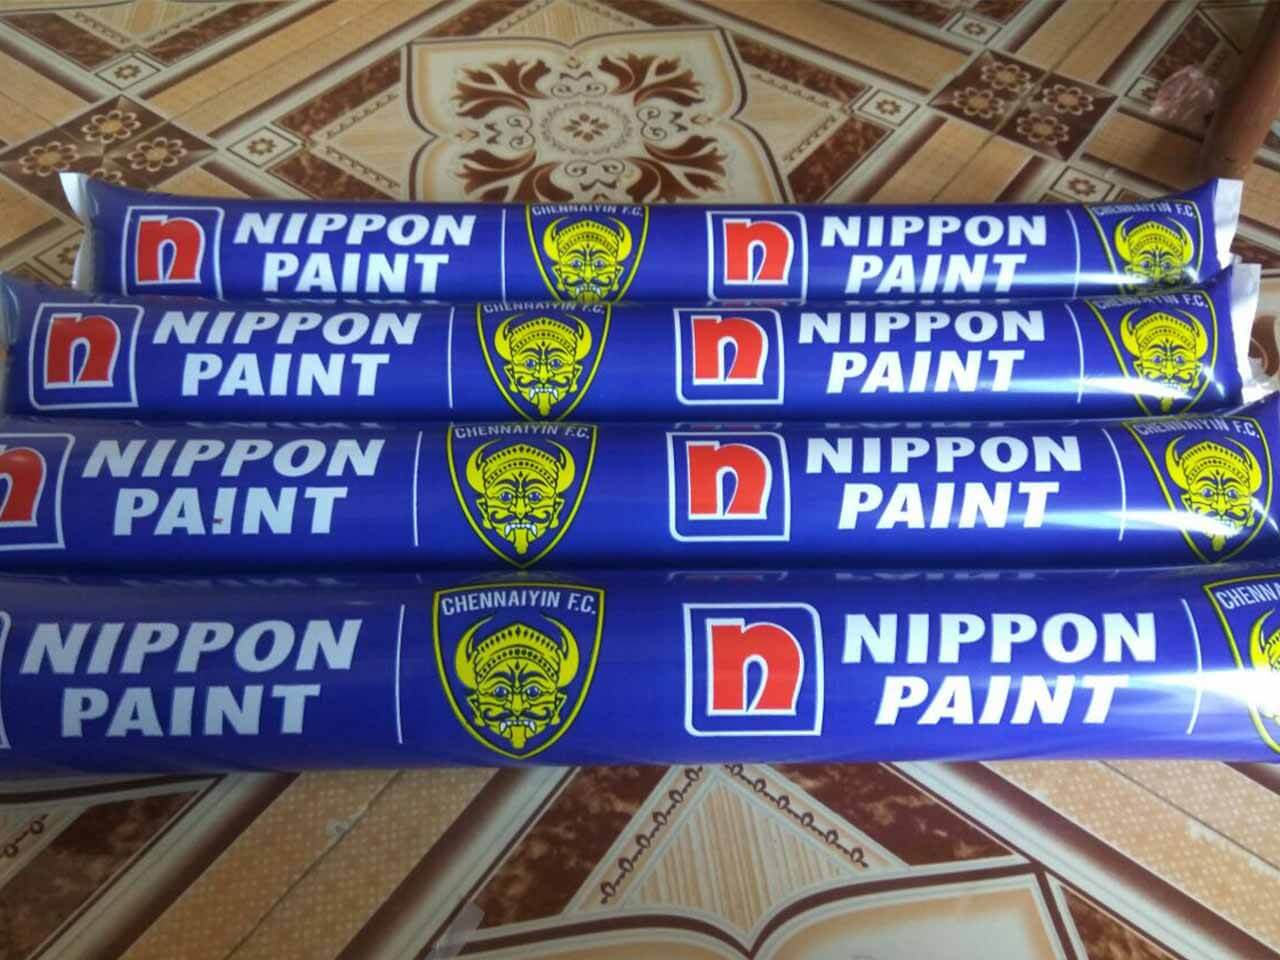 cheering-stick-nippon-paint